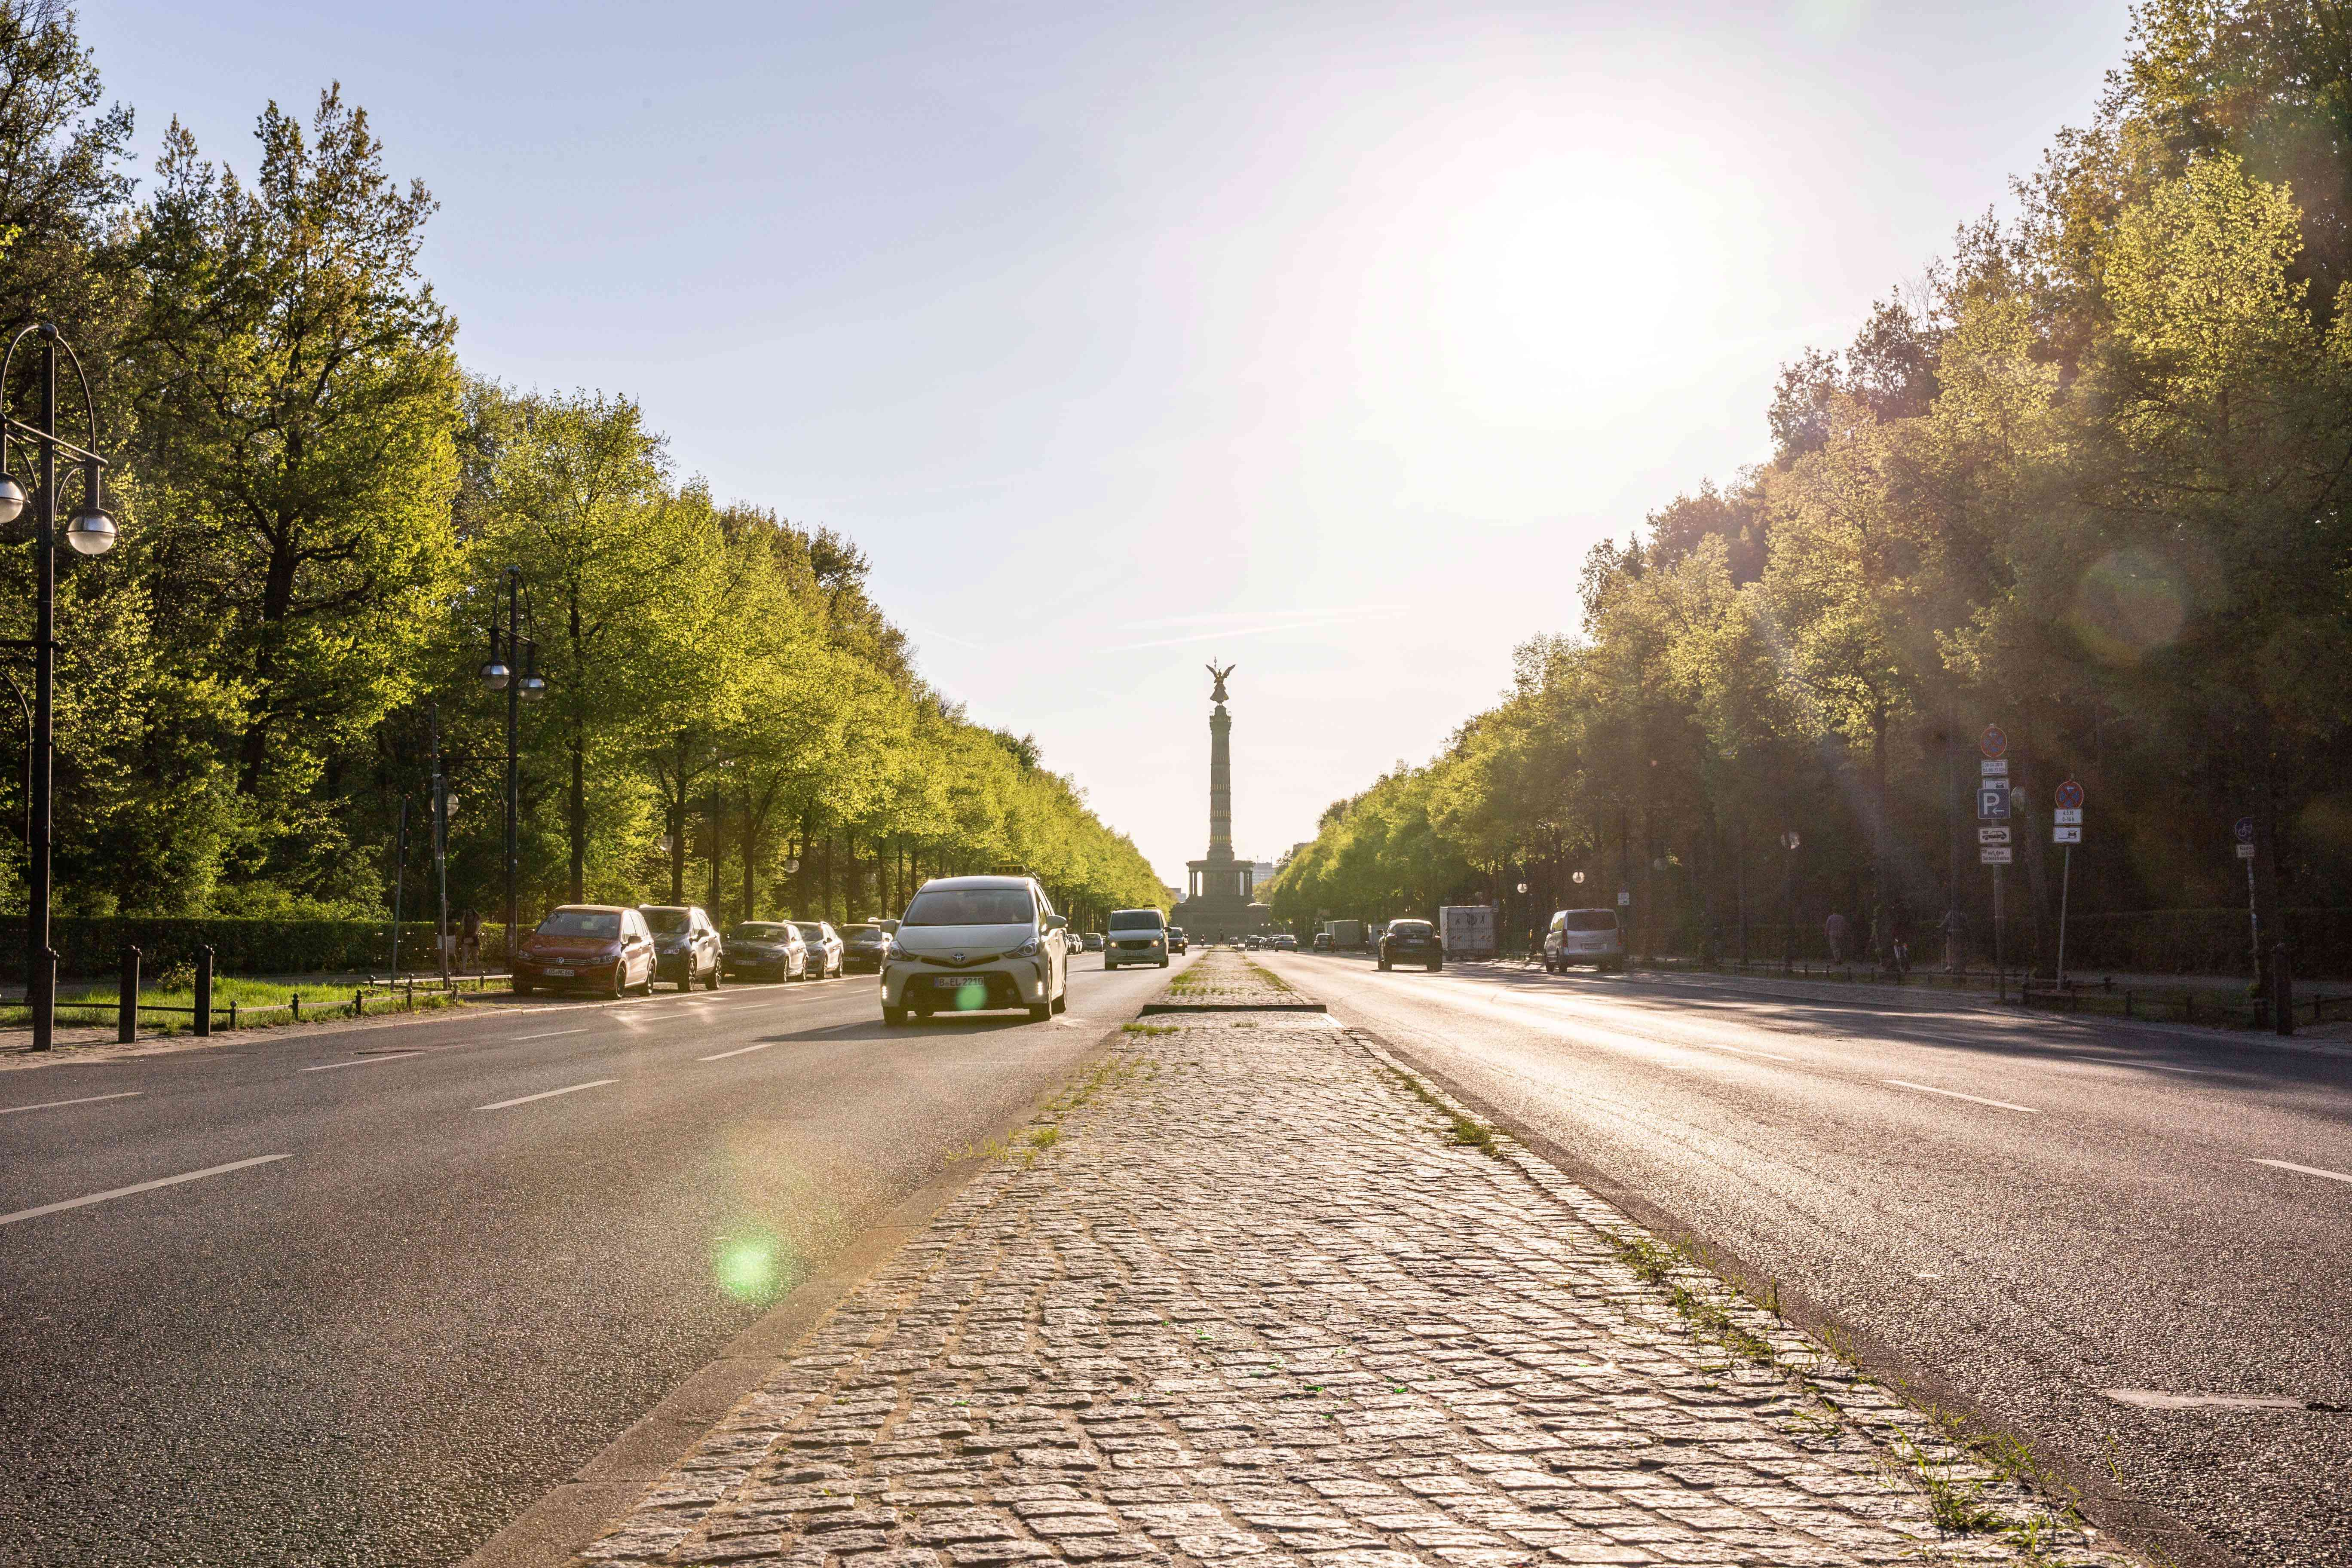 The road leading up to the Victory Column